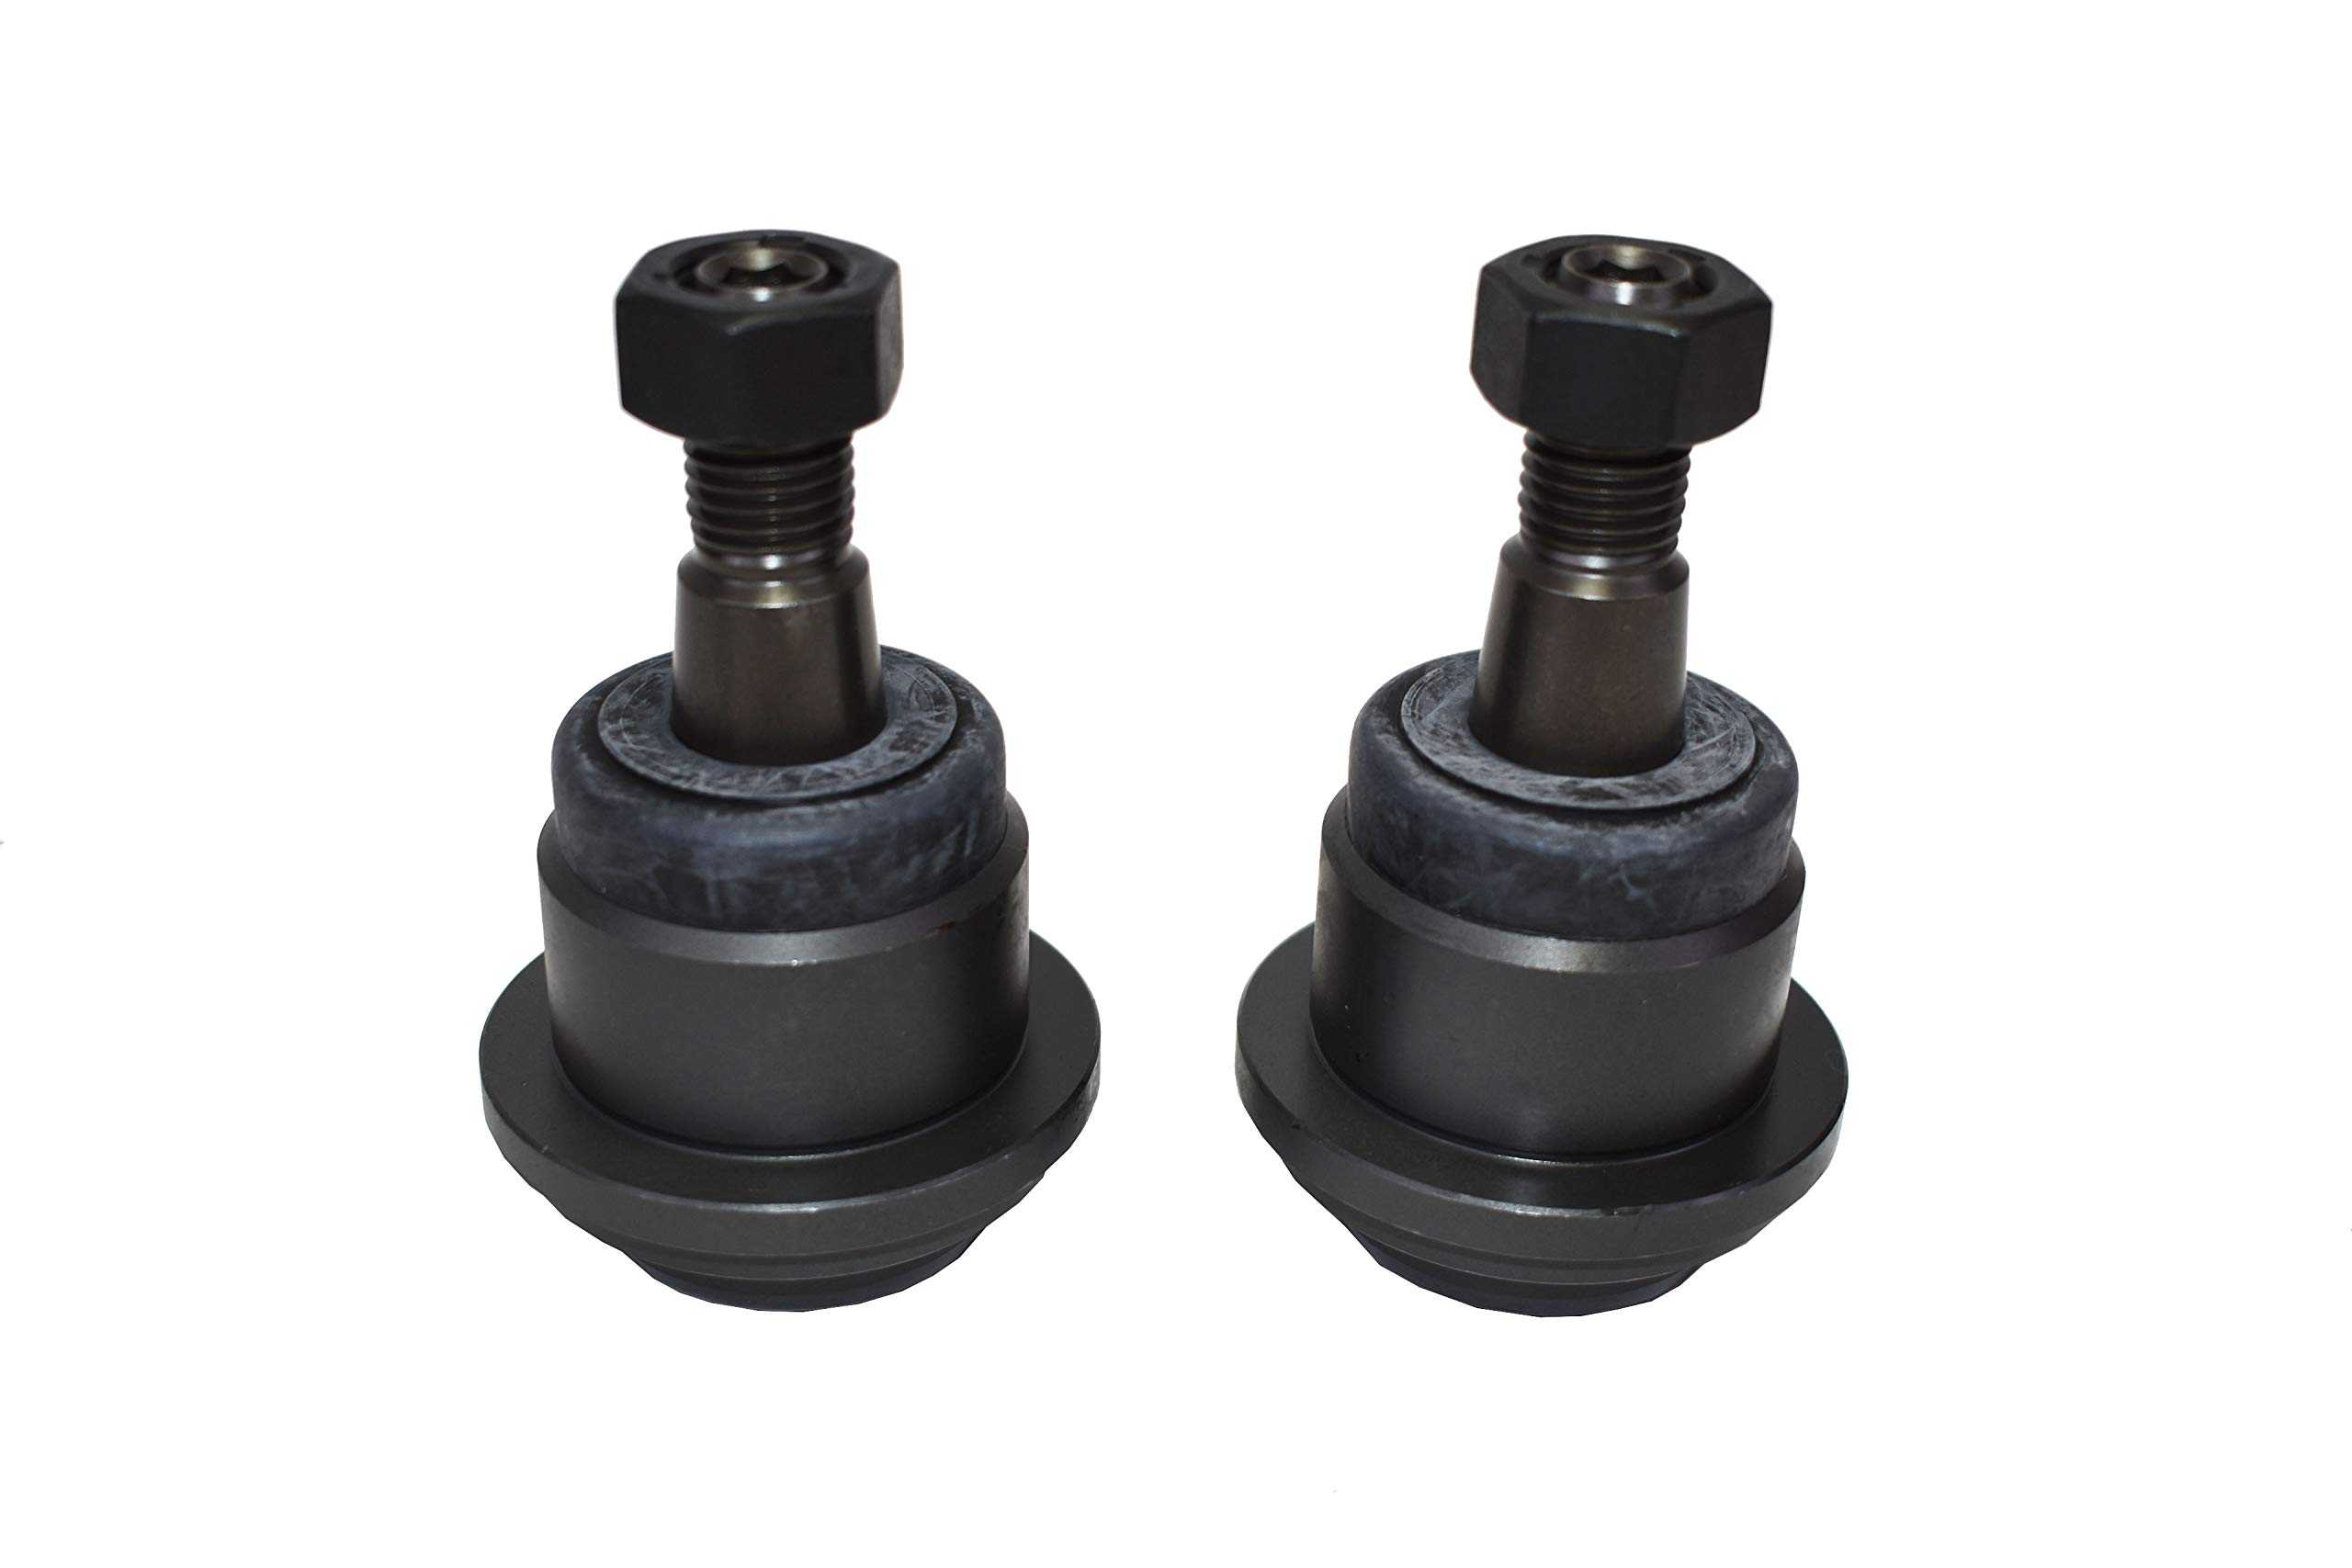 A-Team Performance 4x4 Ball Joint Kit Set XRF Compatible With 2003-2013 Dodge Ram 2500 3500 Improved Design